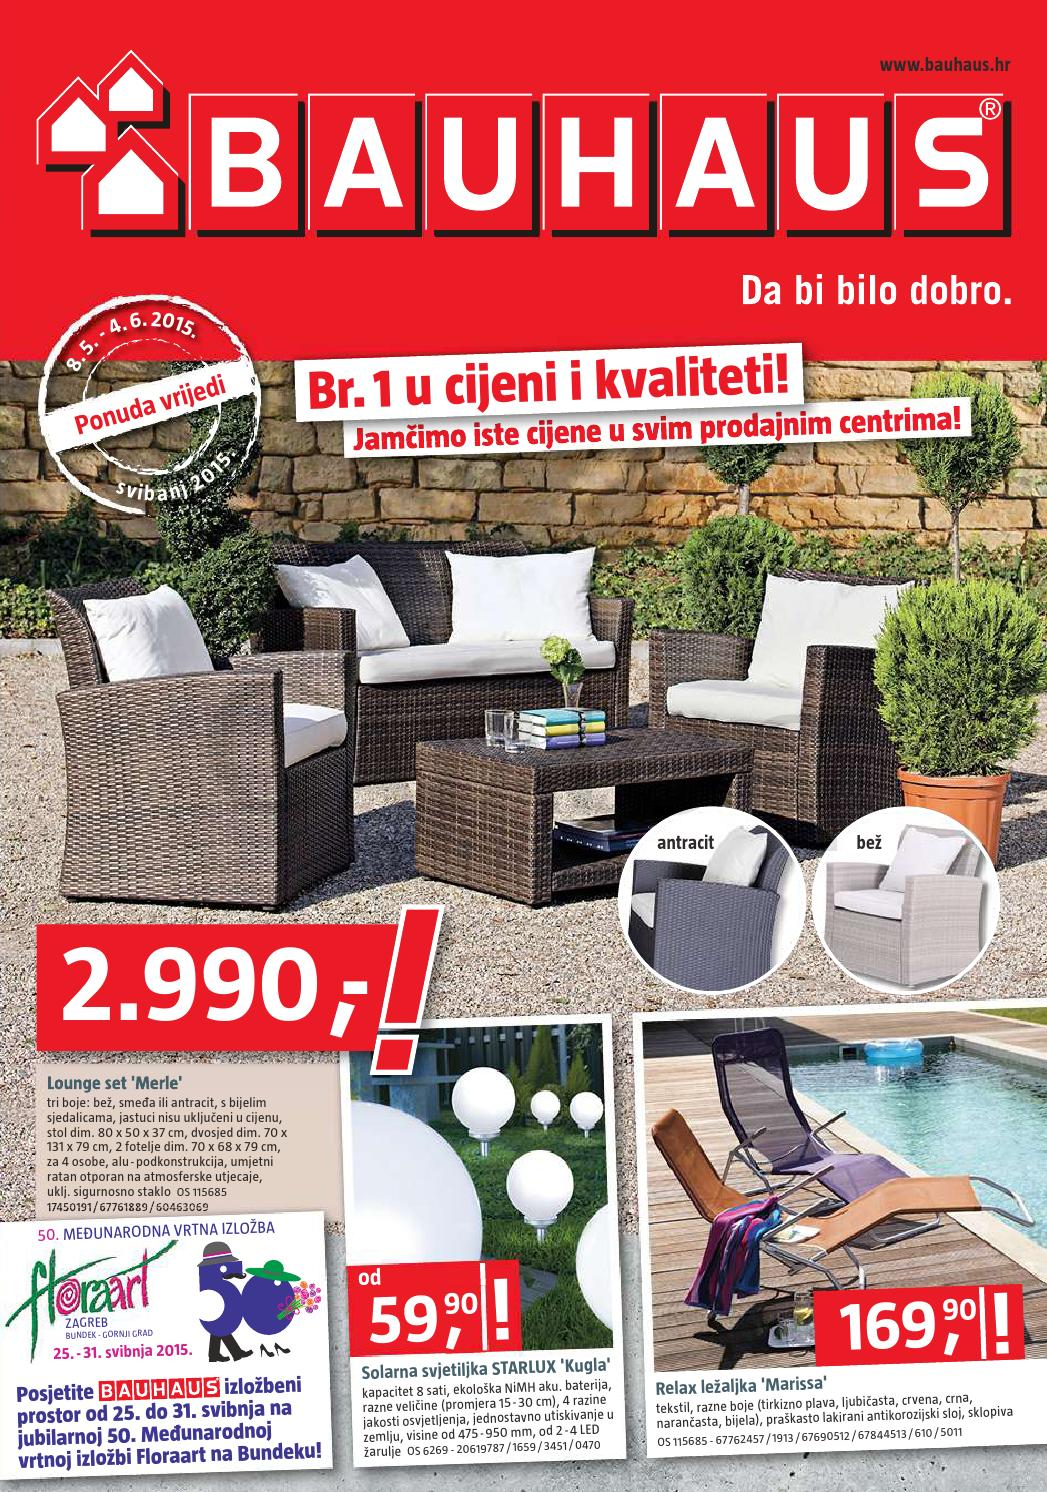 Bauhaus katalog akcija od 08 05 04 06 2015 by for Bauhaus pool katalog 2016